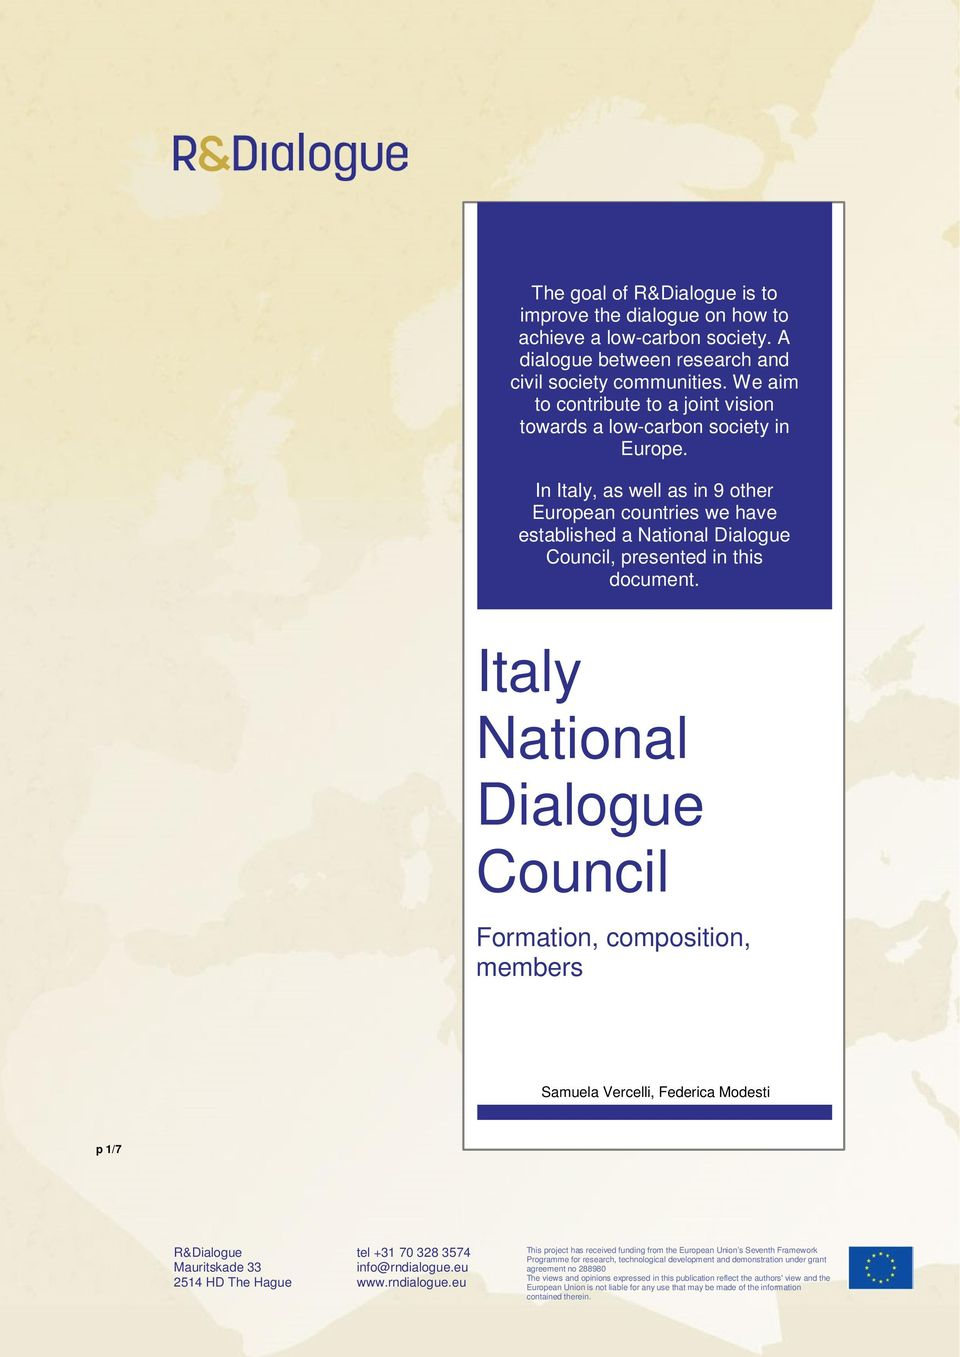 In Italy, as well as in 9 other European countries we have established a National Dialogue Council, presented in this document.